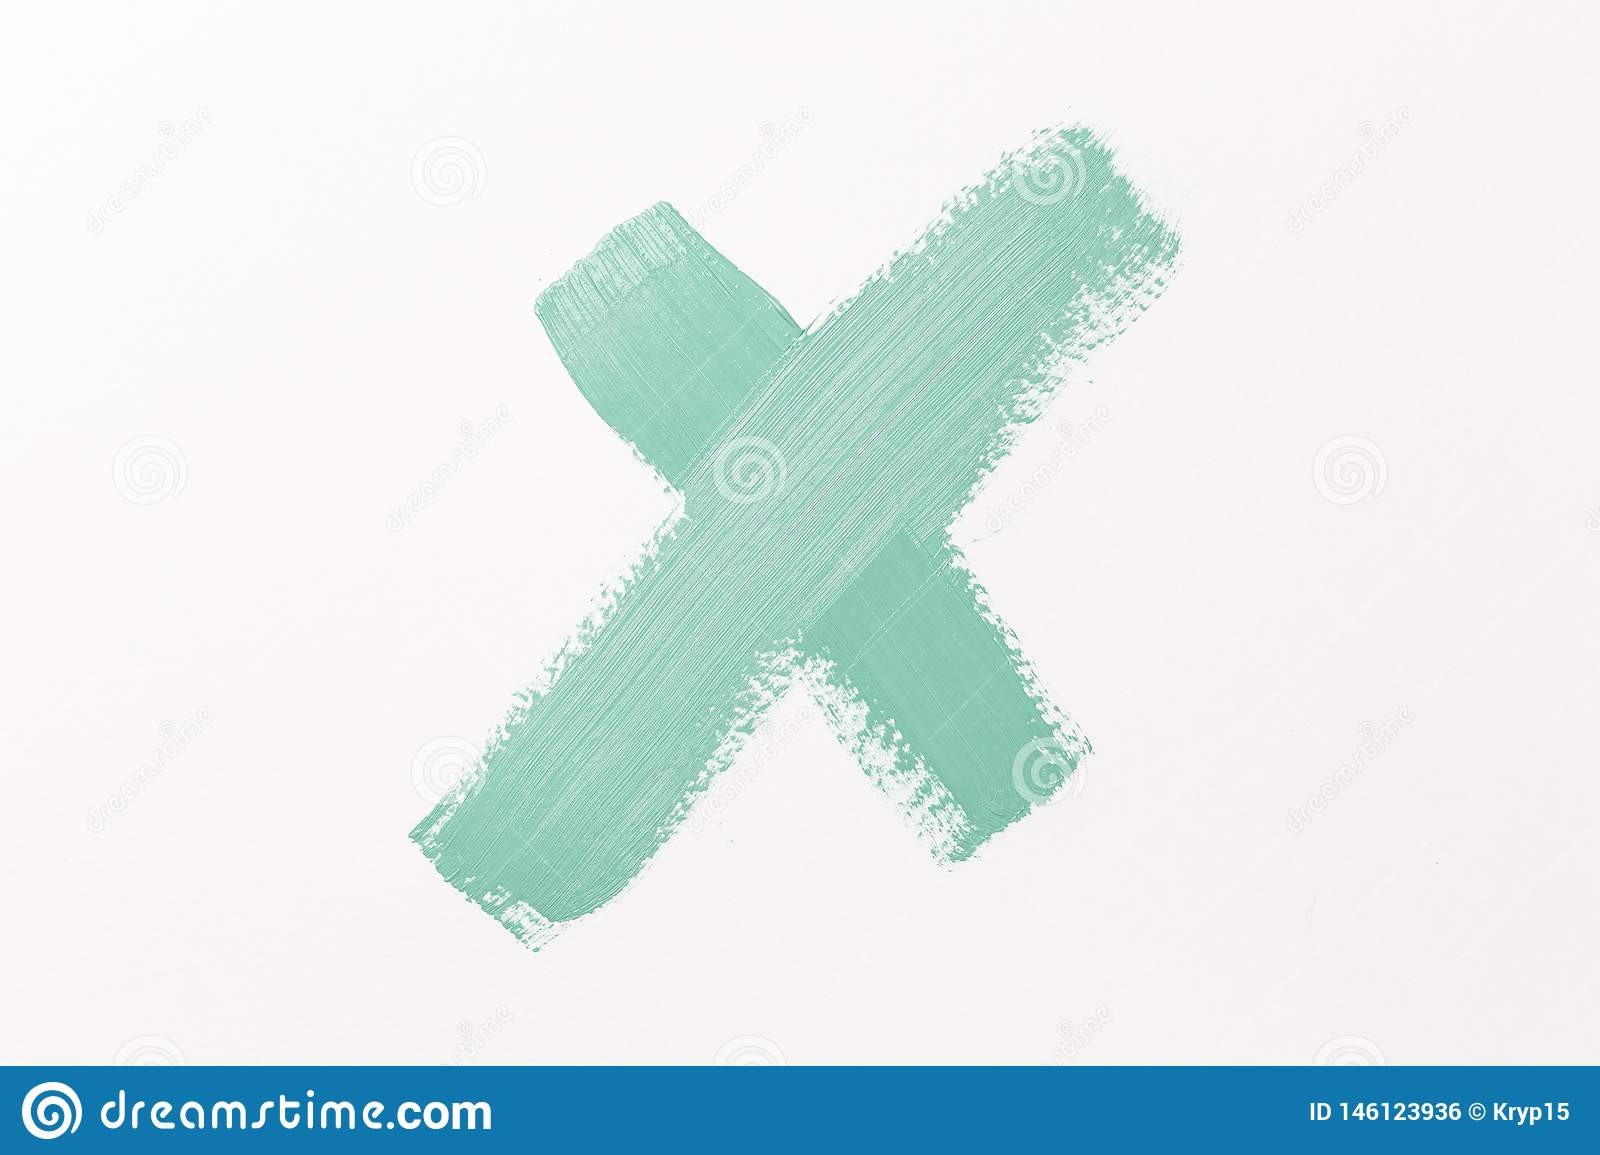 The symbol with the letter X. Abstract texture of Mint paint on paper